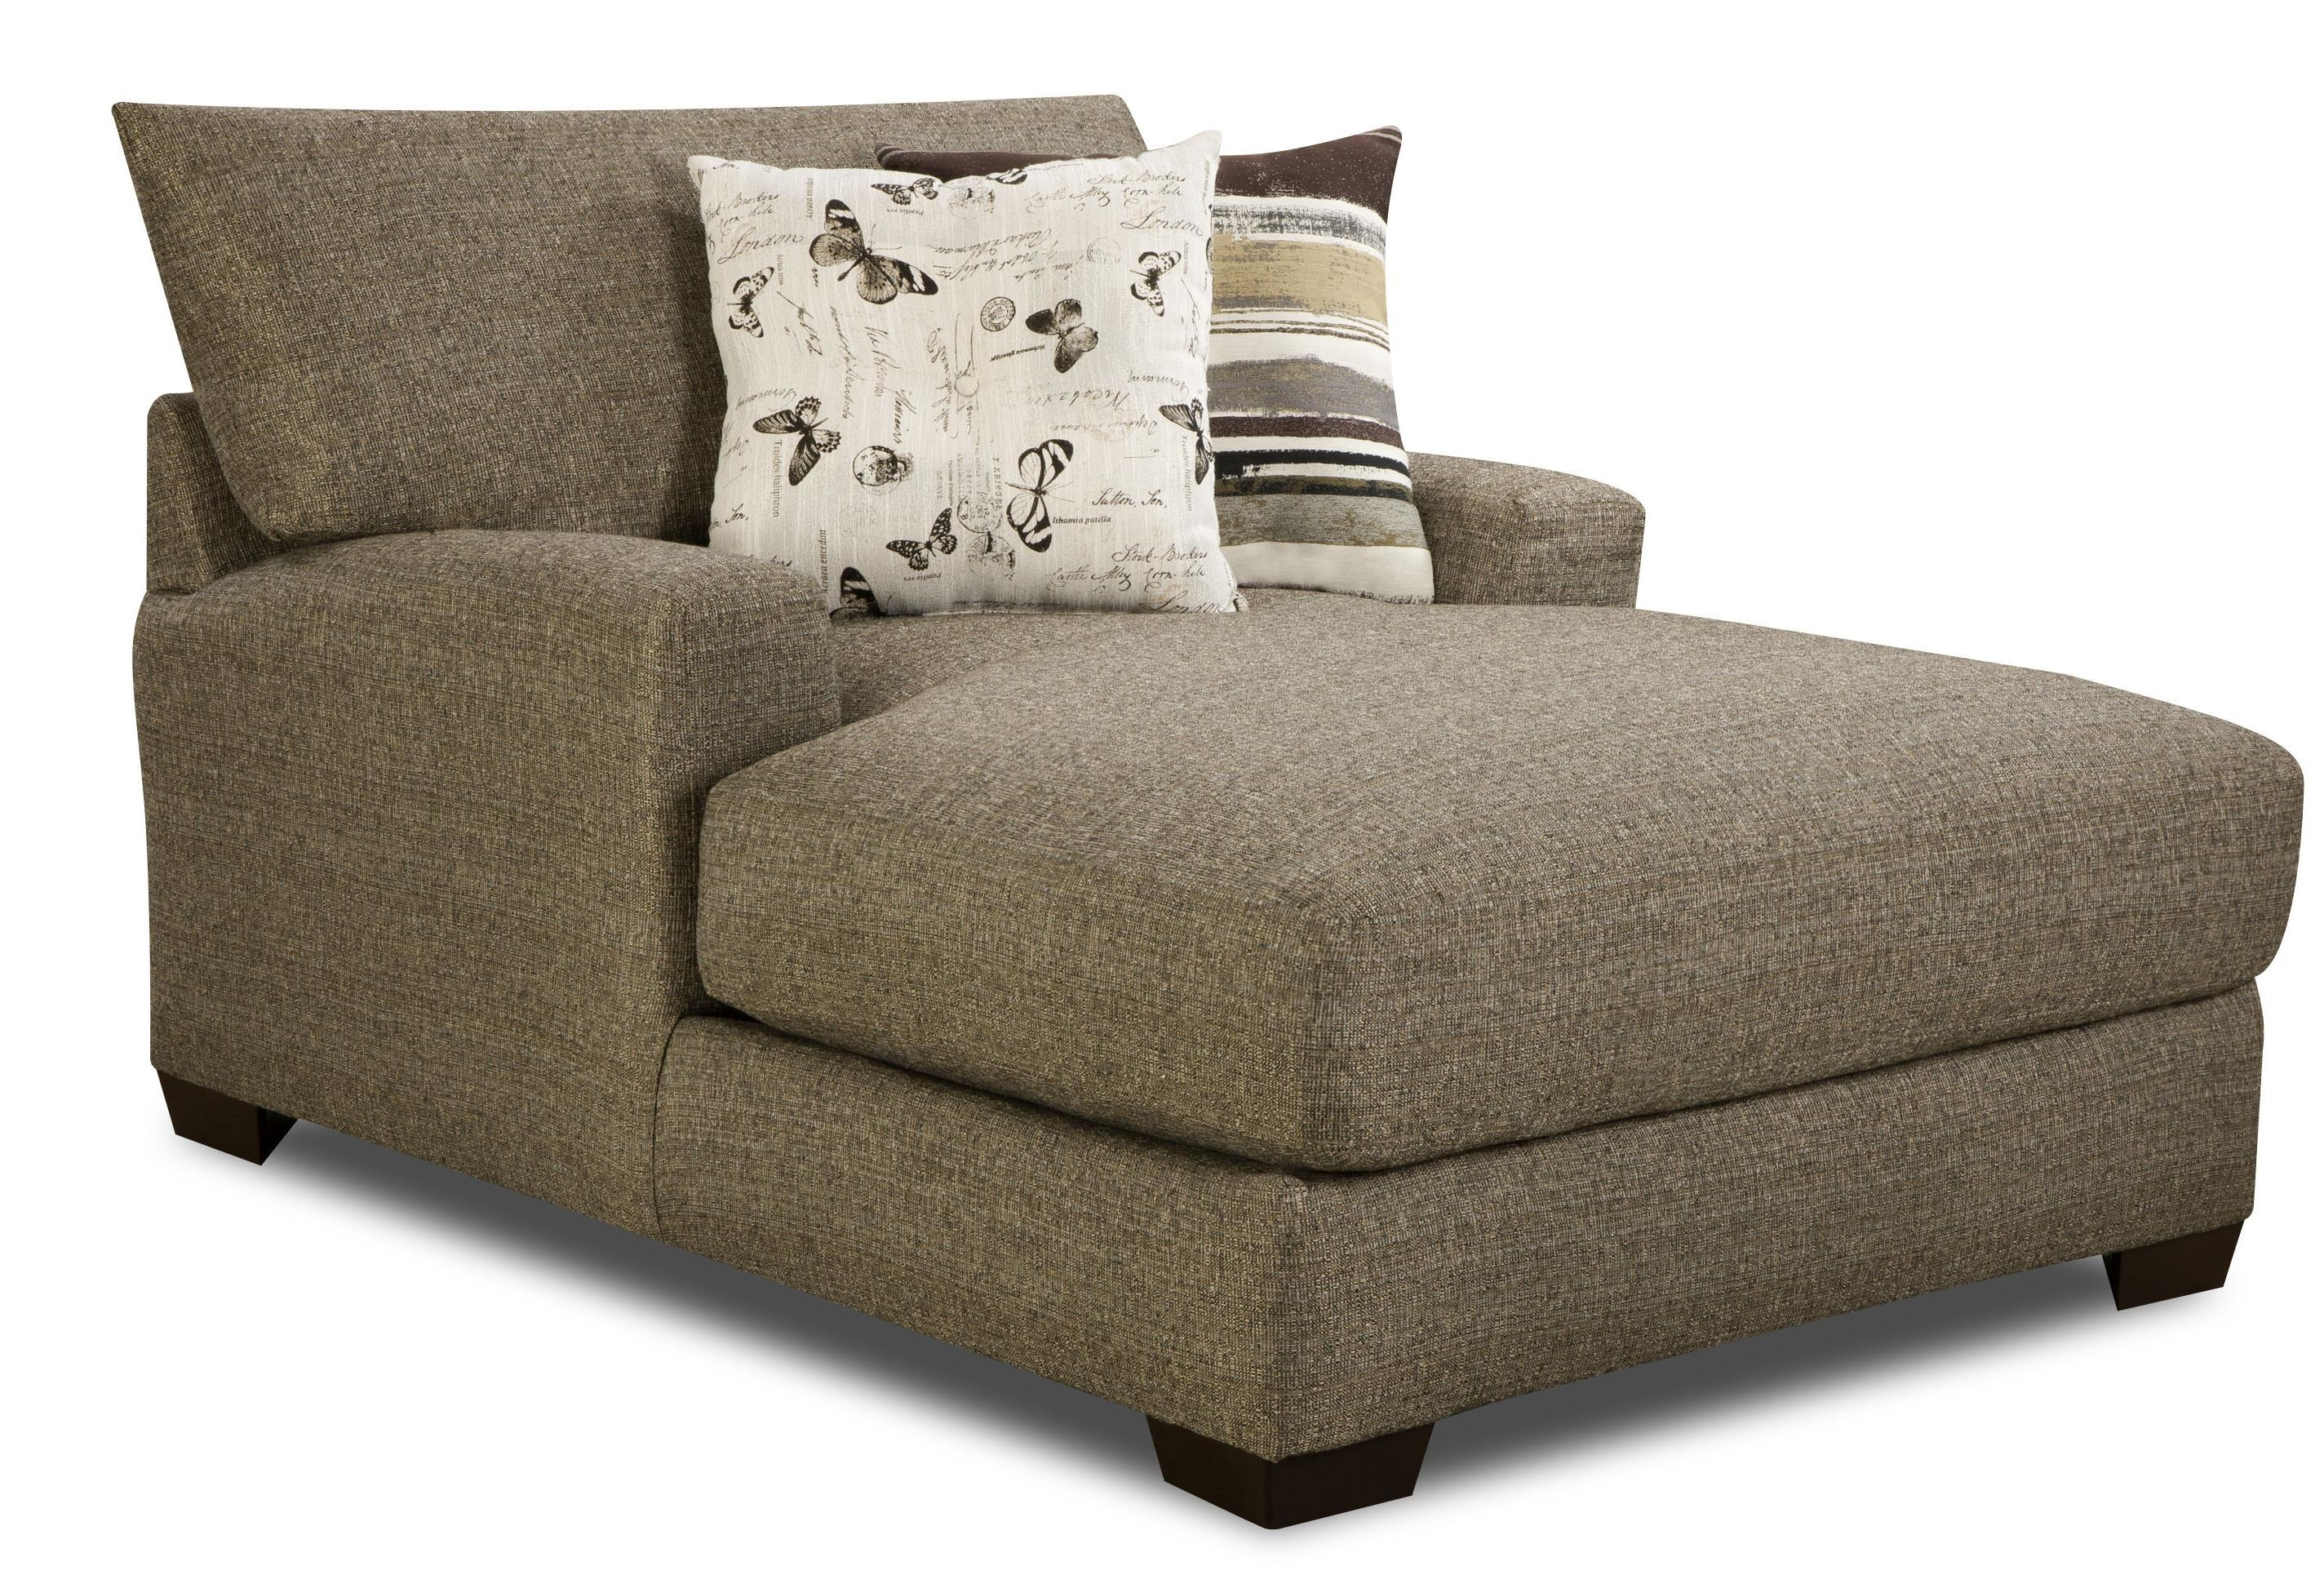 20 Inspirations Lounge Sofas And Chairs Sofa Ideas